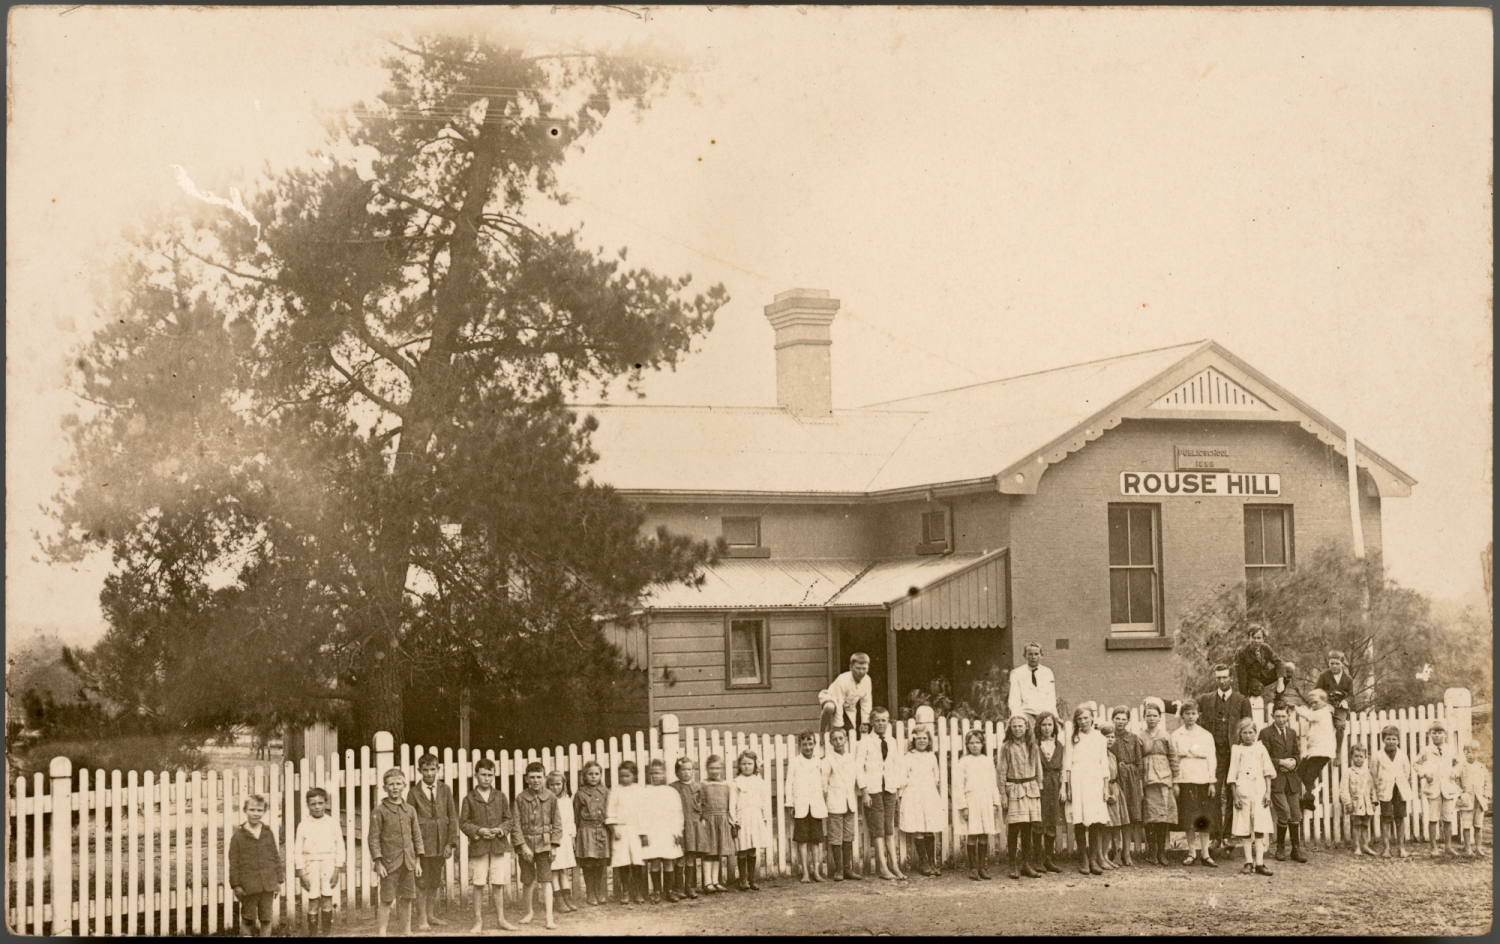 Sepia toned photo of group of children outside front fence of school building.